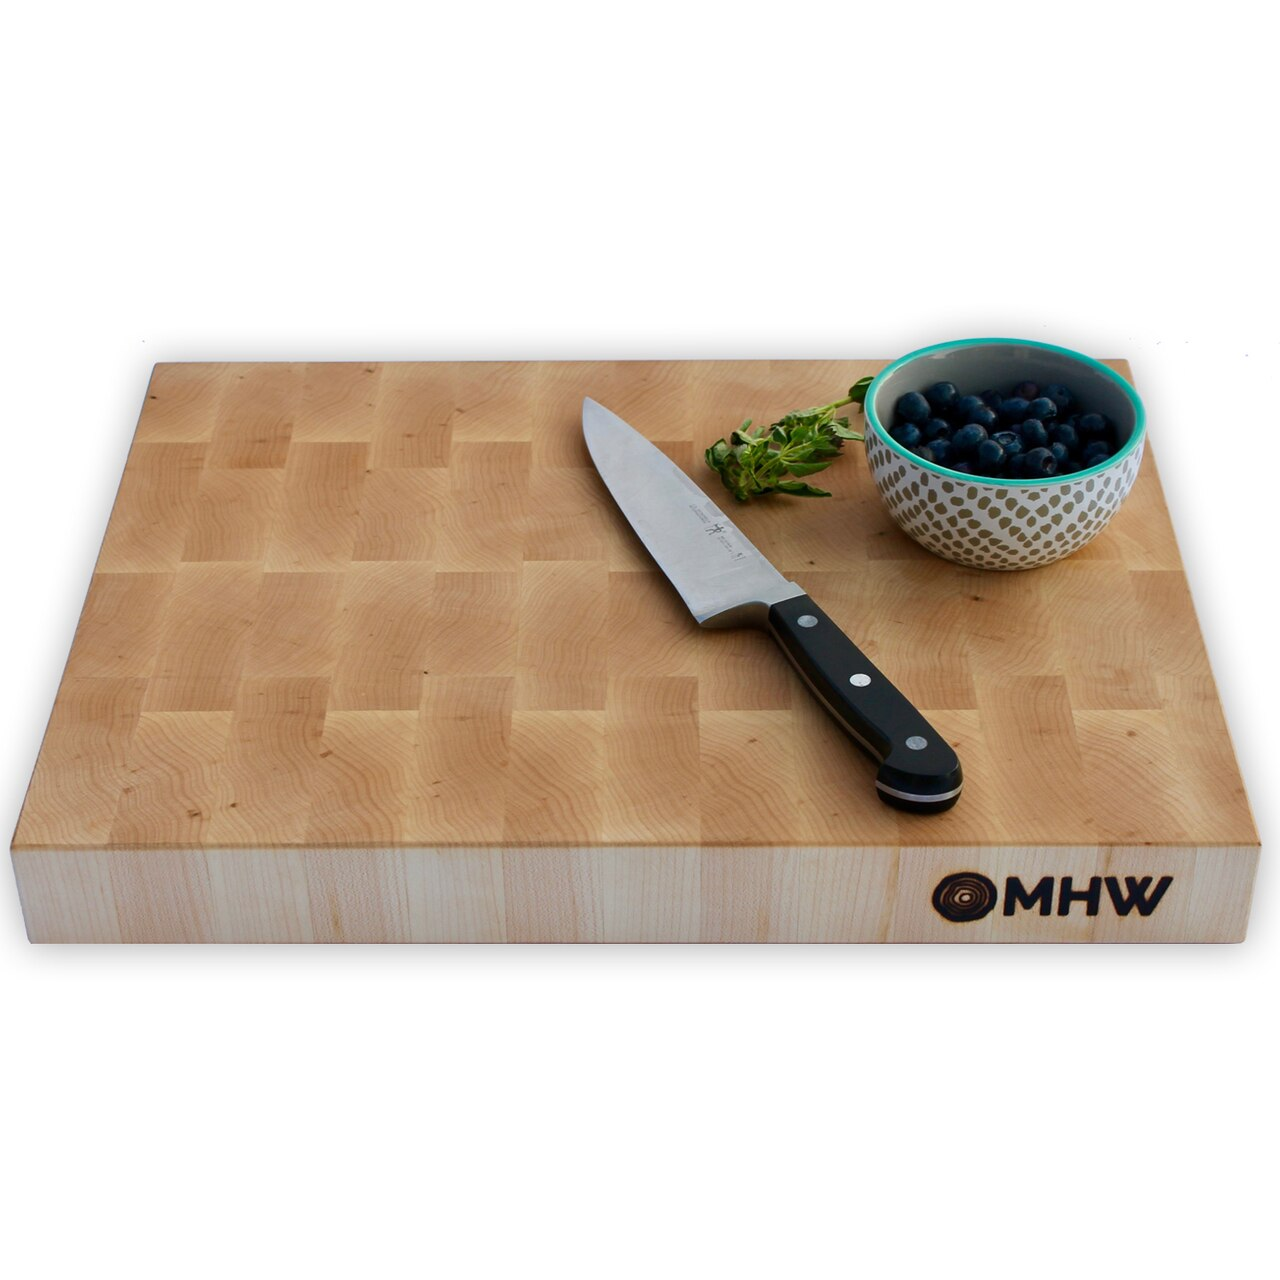 12x16 Maple End Grain Wood Butcher Block - wFREE Board Butter!